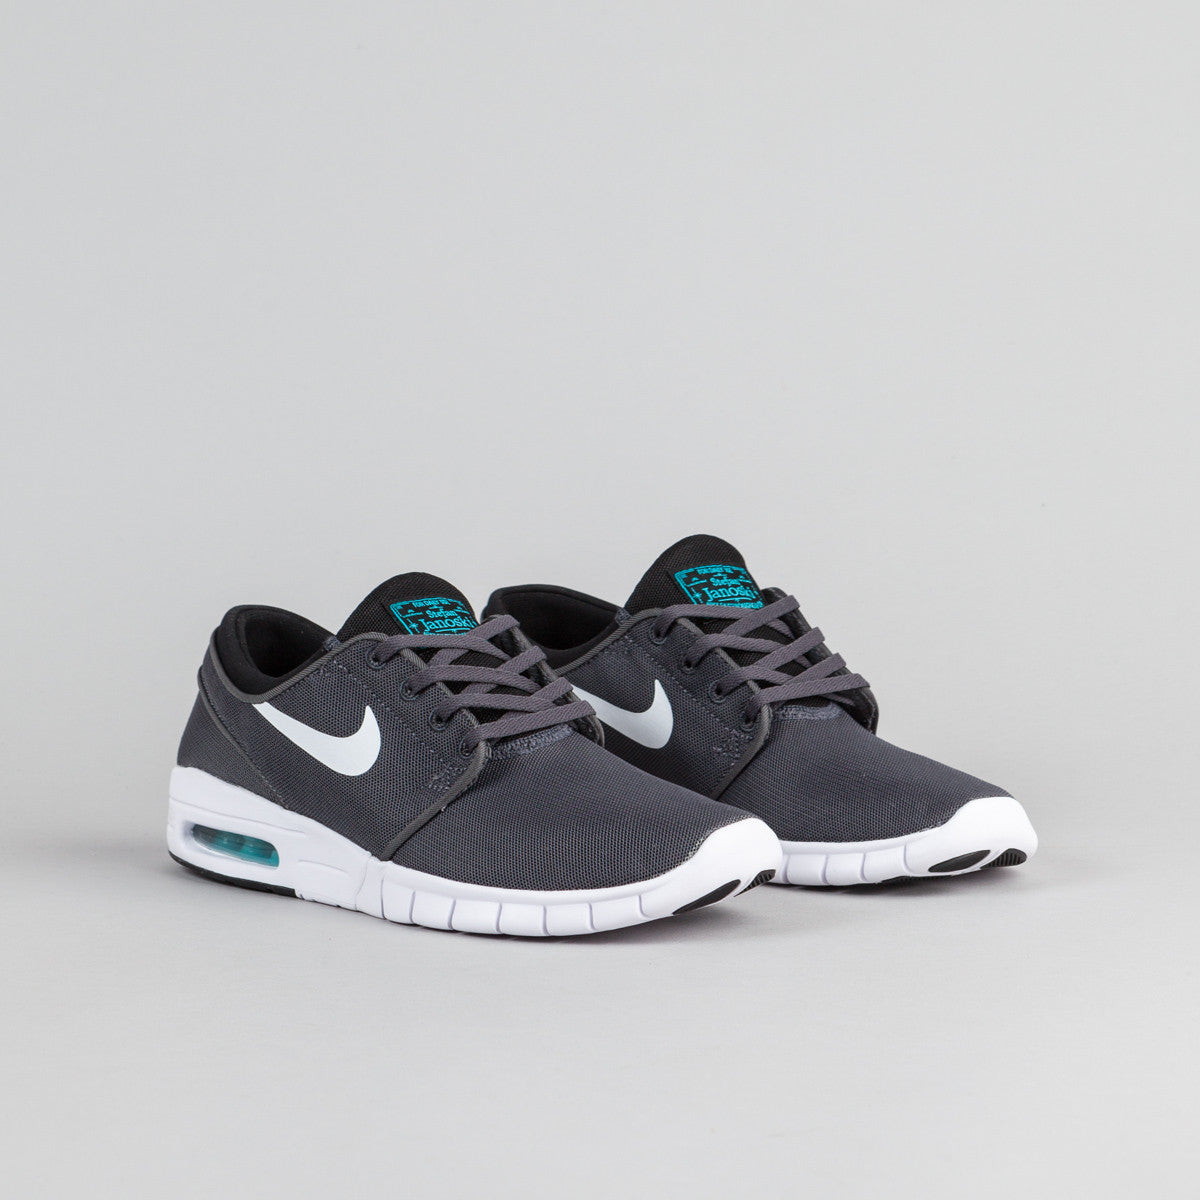 nike air max pour femme - Grey Blue And White Janoski For Sale | Professor Yossi Sheffi